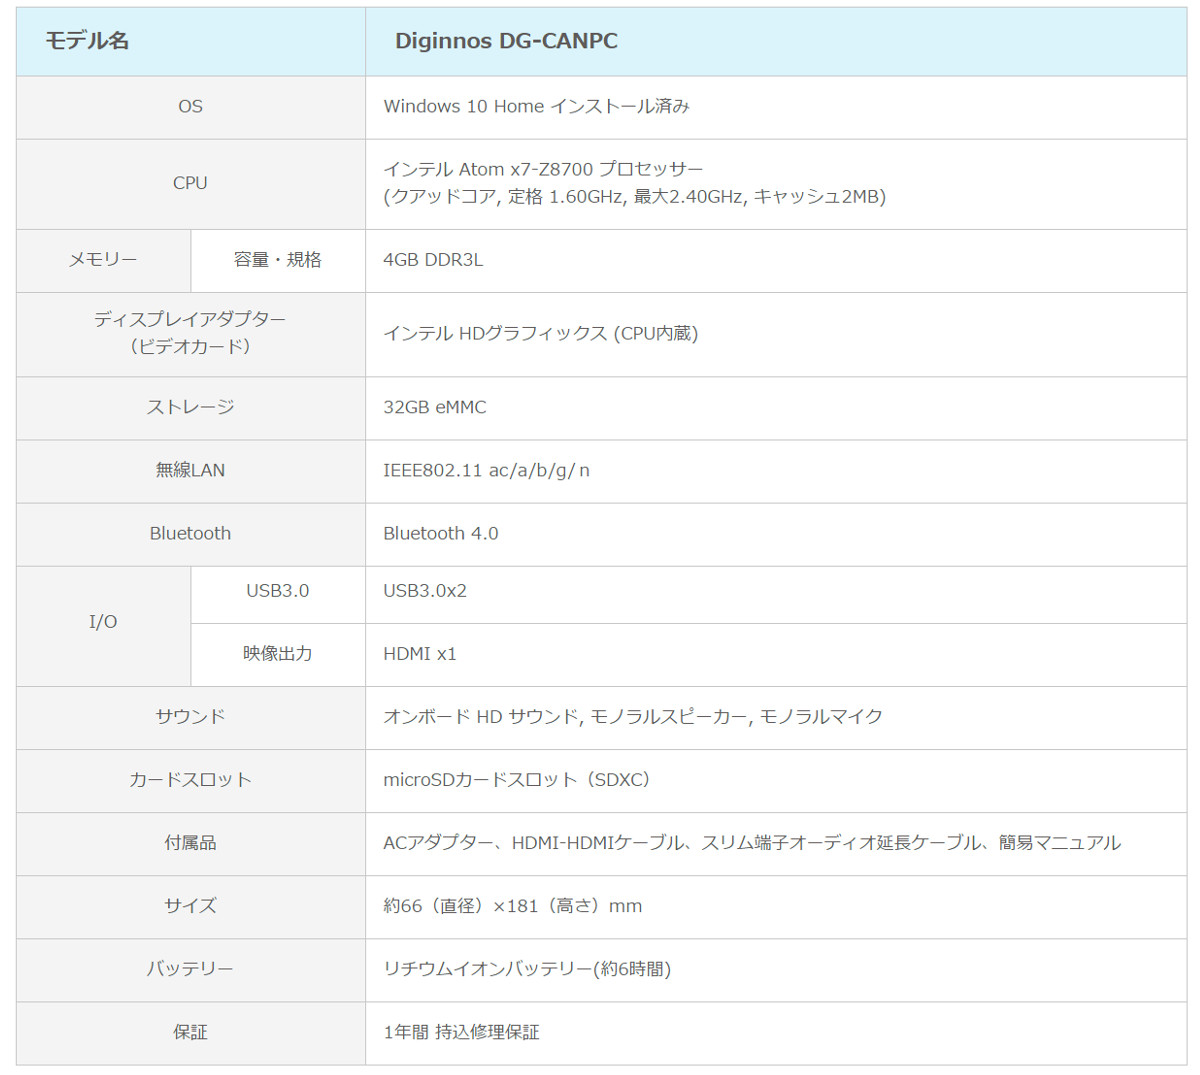 Diginnos DG-CANPC スペック表